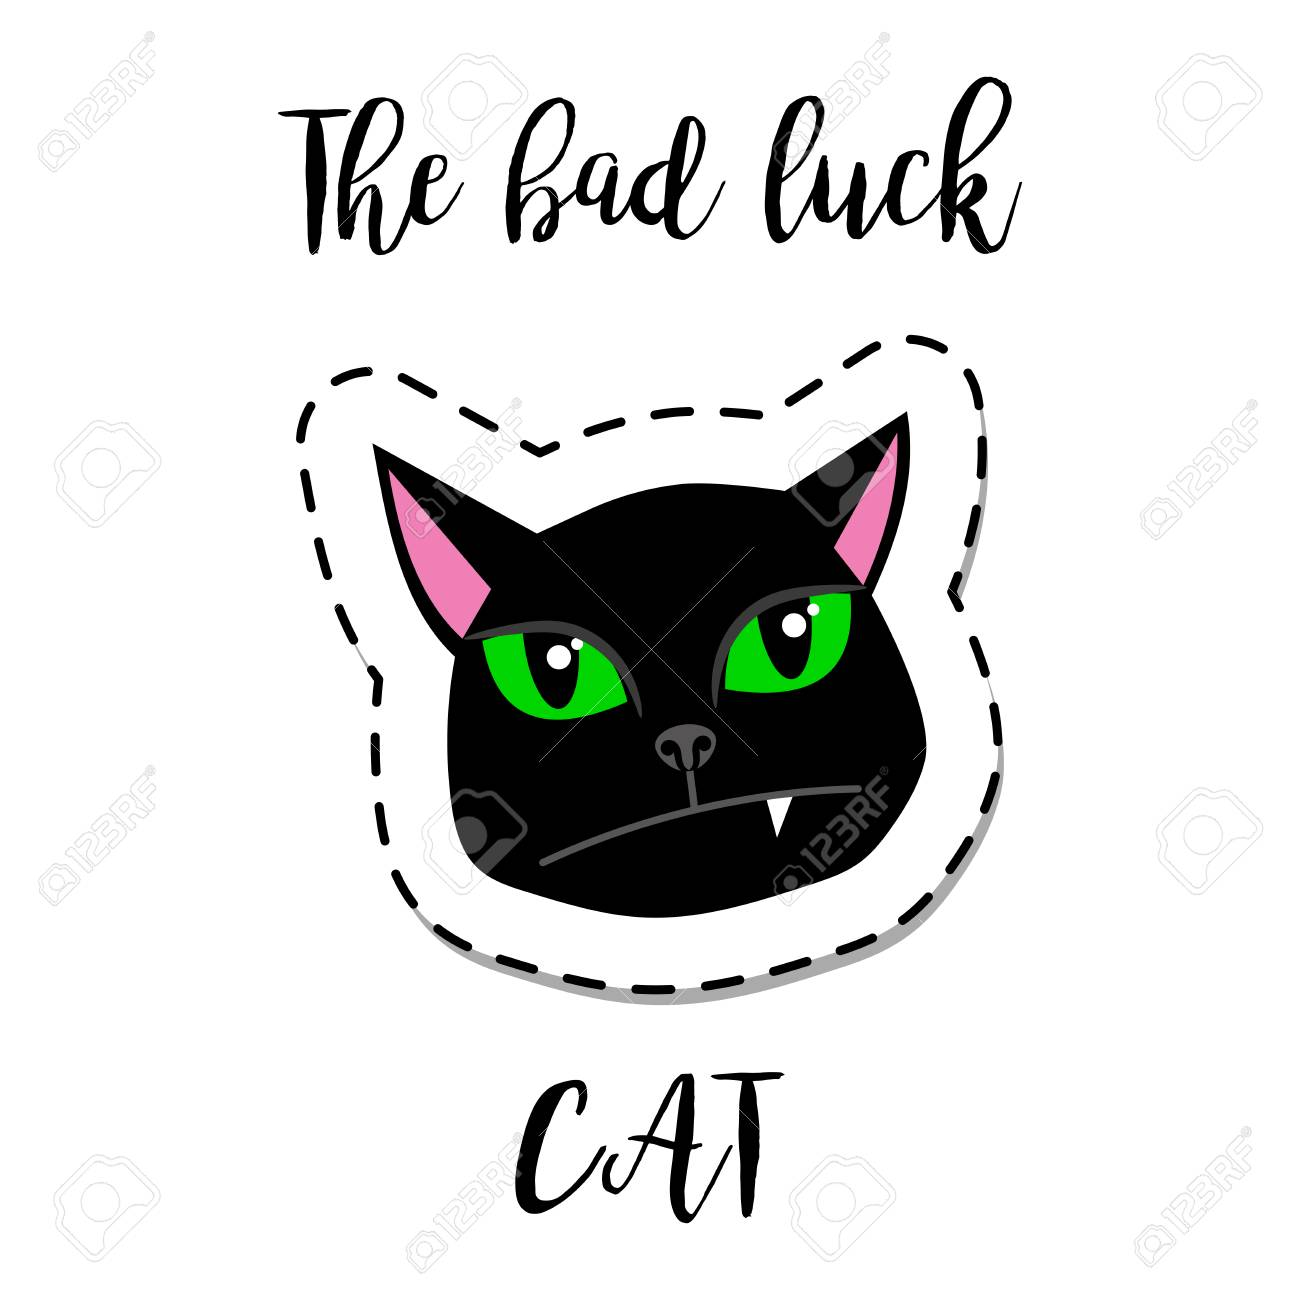 Cat Stock Quote Fashion Patch Element With Quote The Bad Luck Catblack Cat